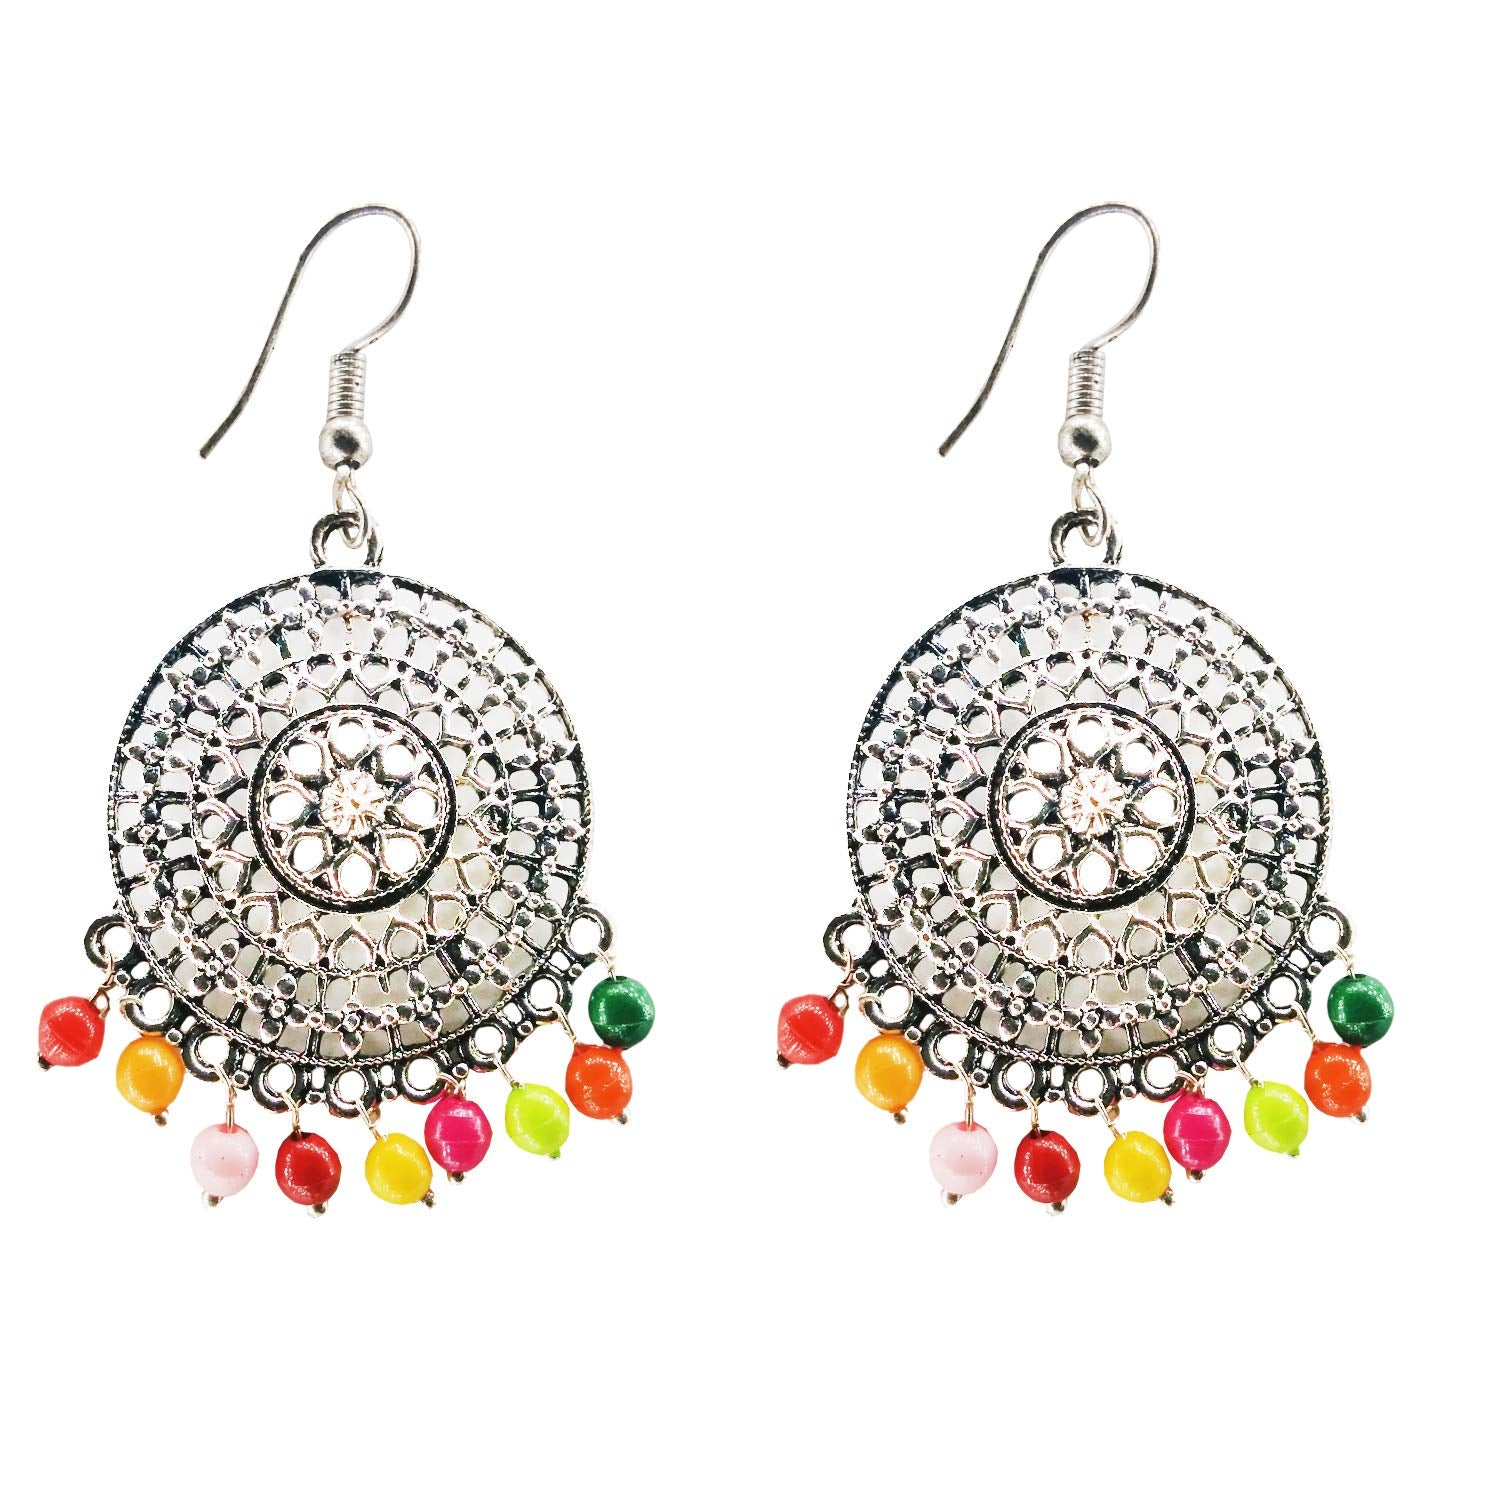 Oxidized Silver Chandbali Earrings for Women and girls (Multi color) - Bagaholics Gift